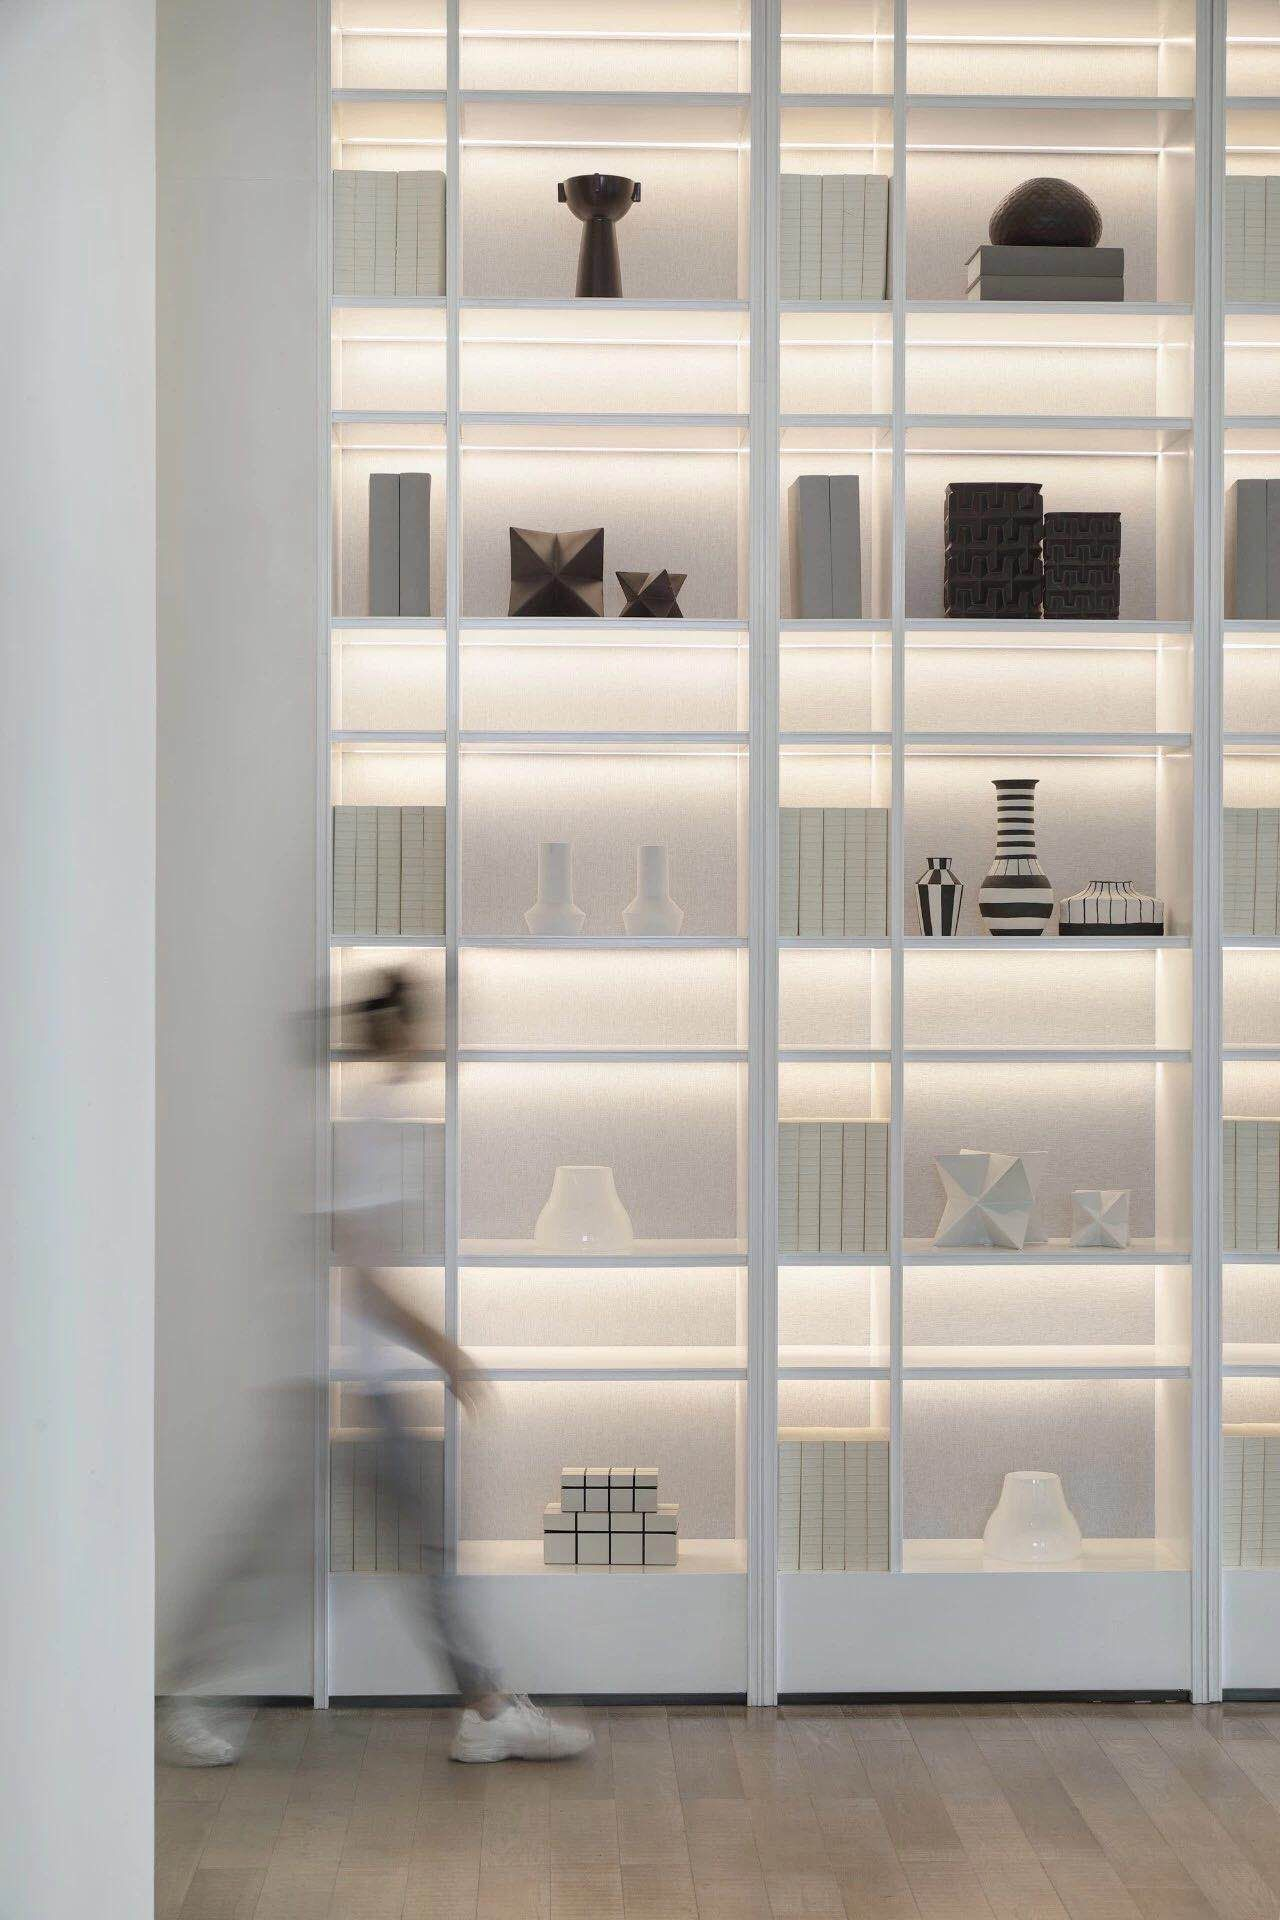 Pin By Mwm Studio On Details Shelving Niches Etc In 2020 With Images Shelving Design Minimalism Interior Furniture Design Modern